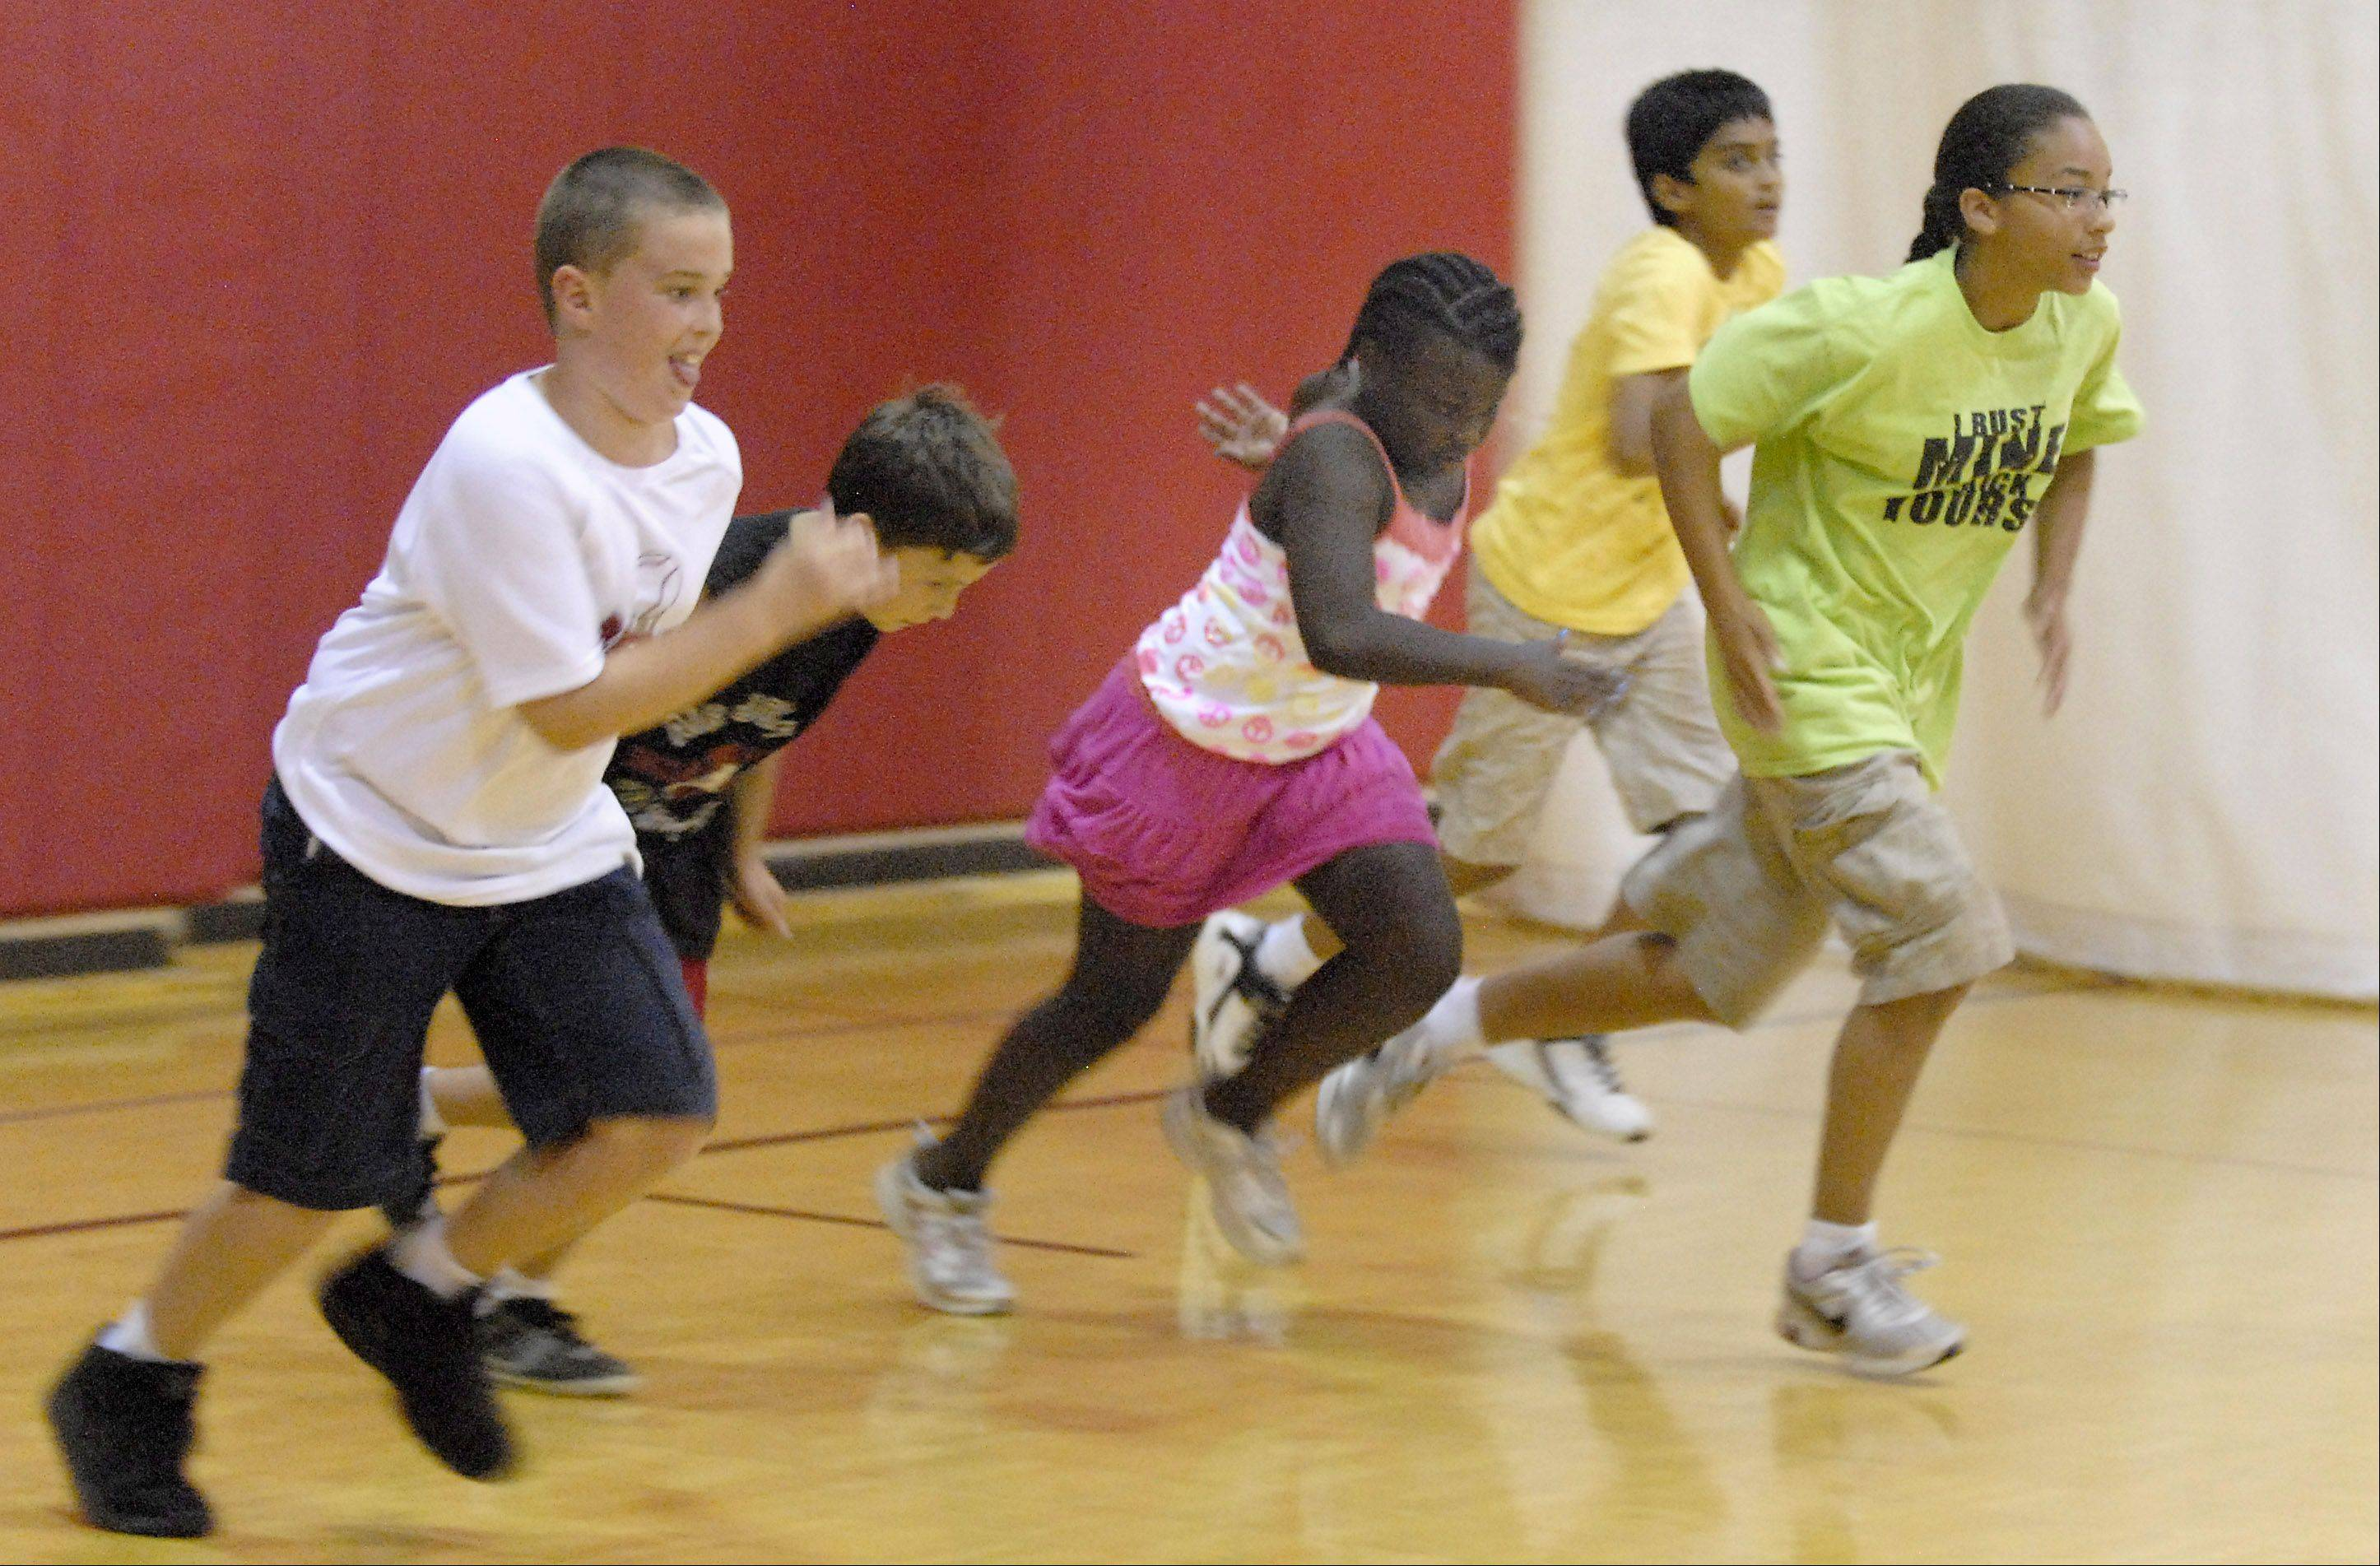 Kids at the Schaumburg Park District Day Camp work up a sweat in the air-conditioned gym. Normally in hot weather they alternate with inside and outside activities. With temperatures over 90 degrees on Tuesday they were kept inside.